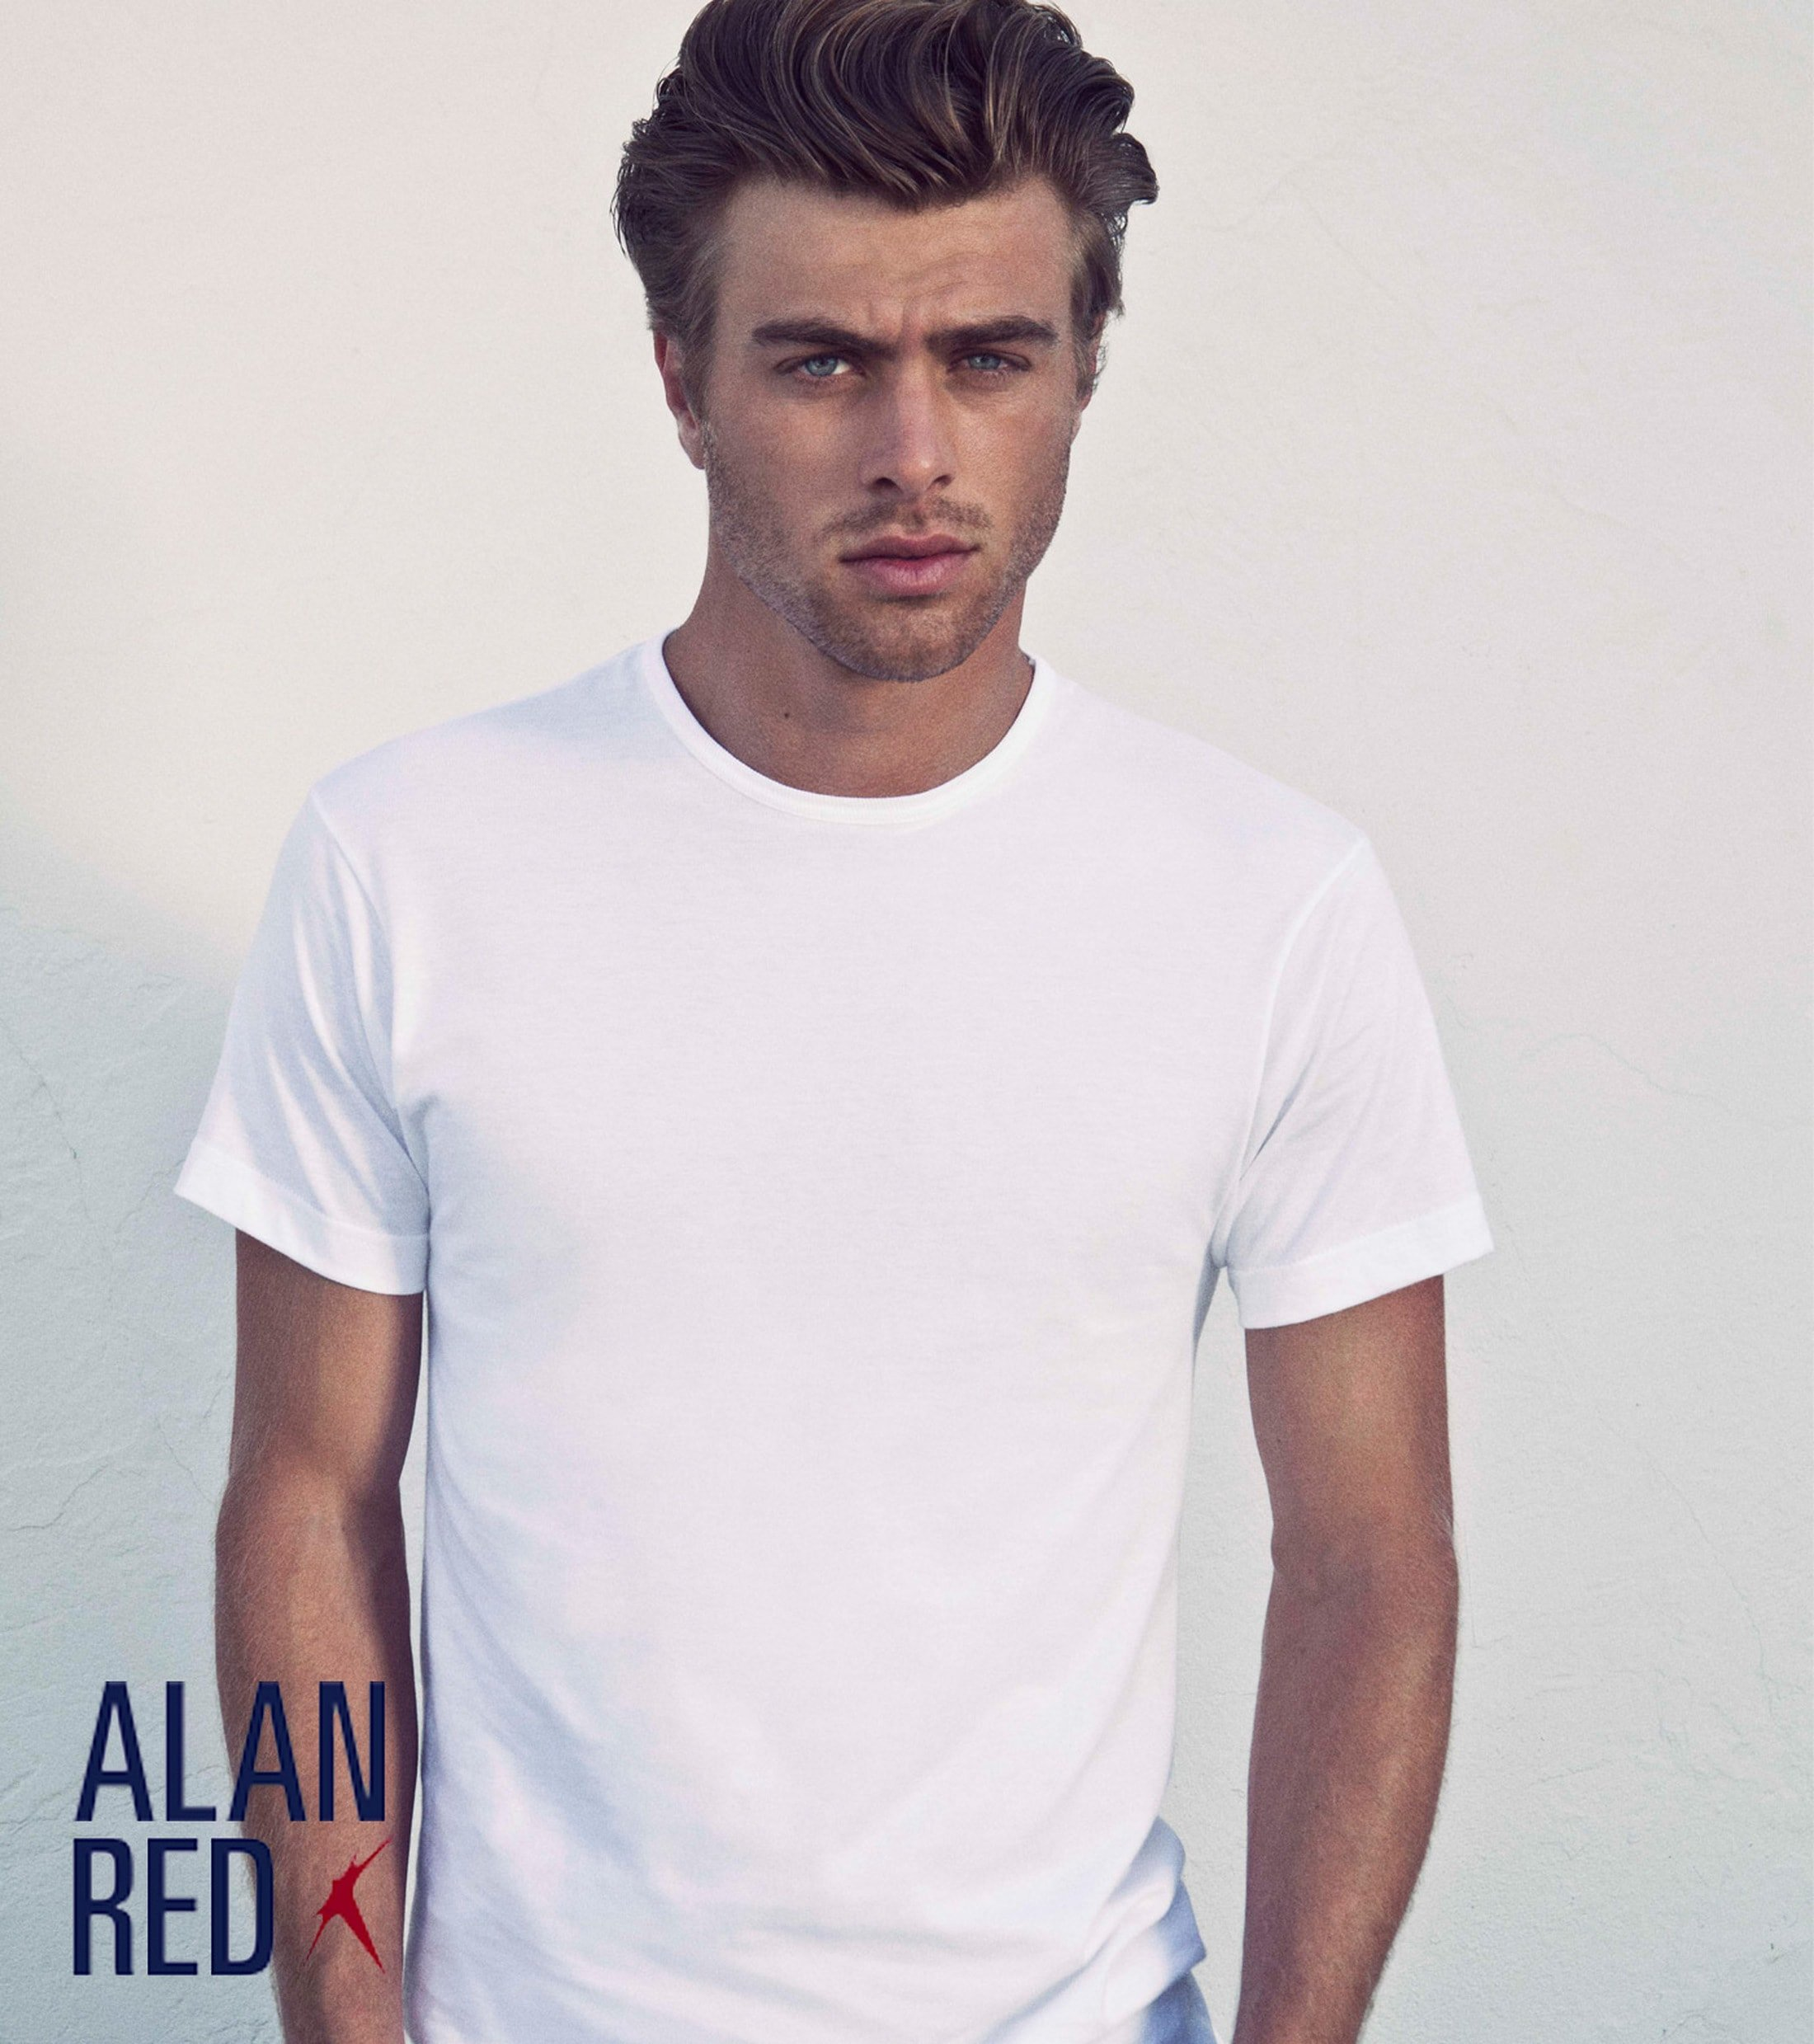 Alan Red Derby Round Neck T-shirt White 2-Pack foto 4